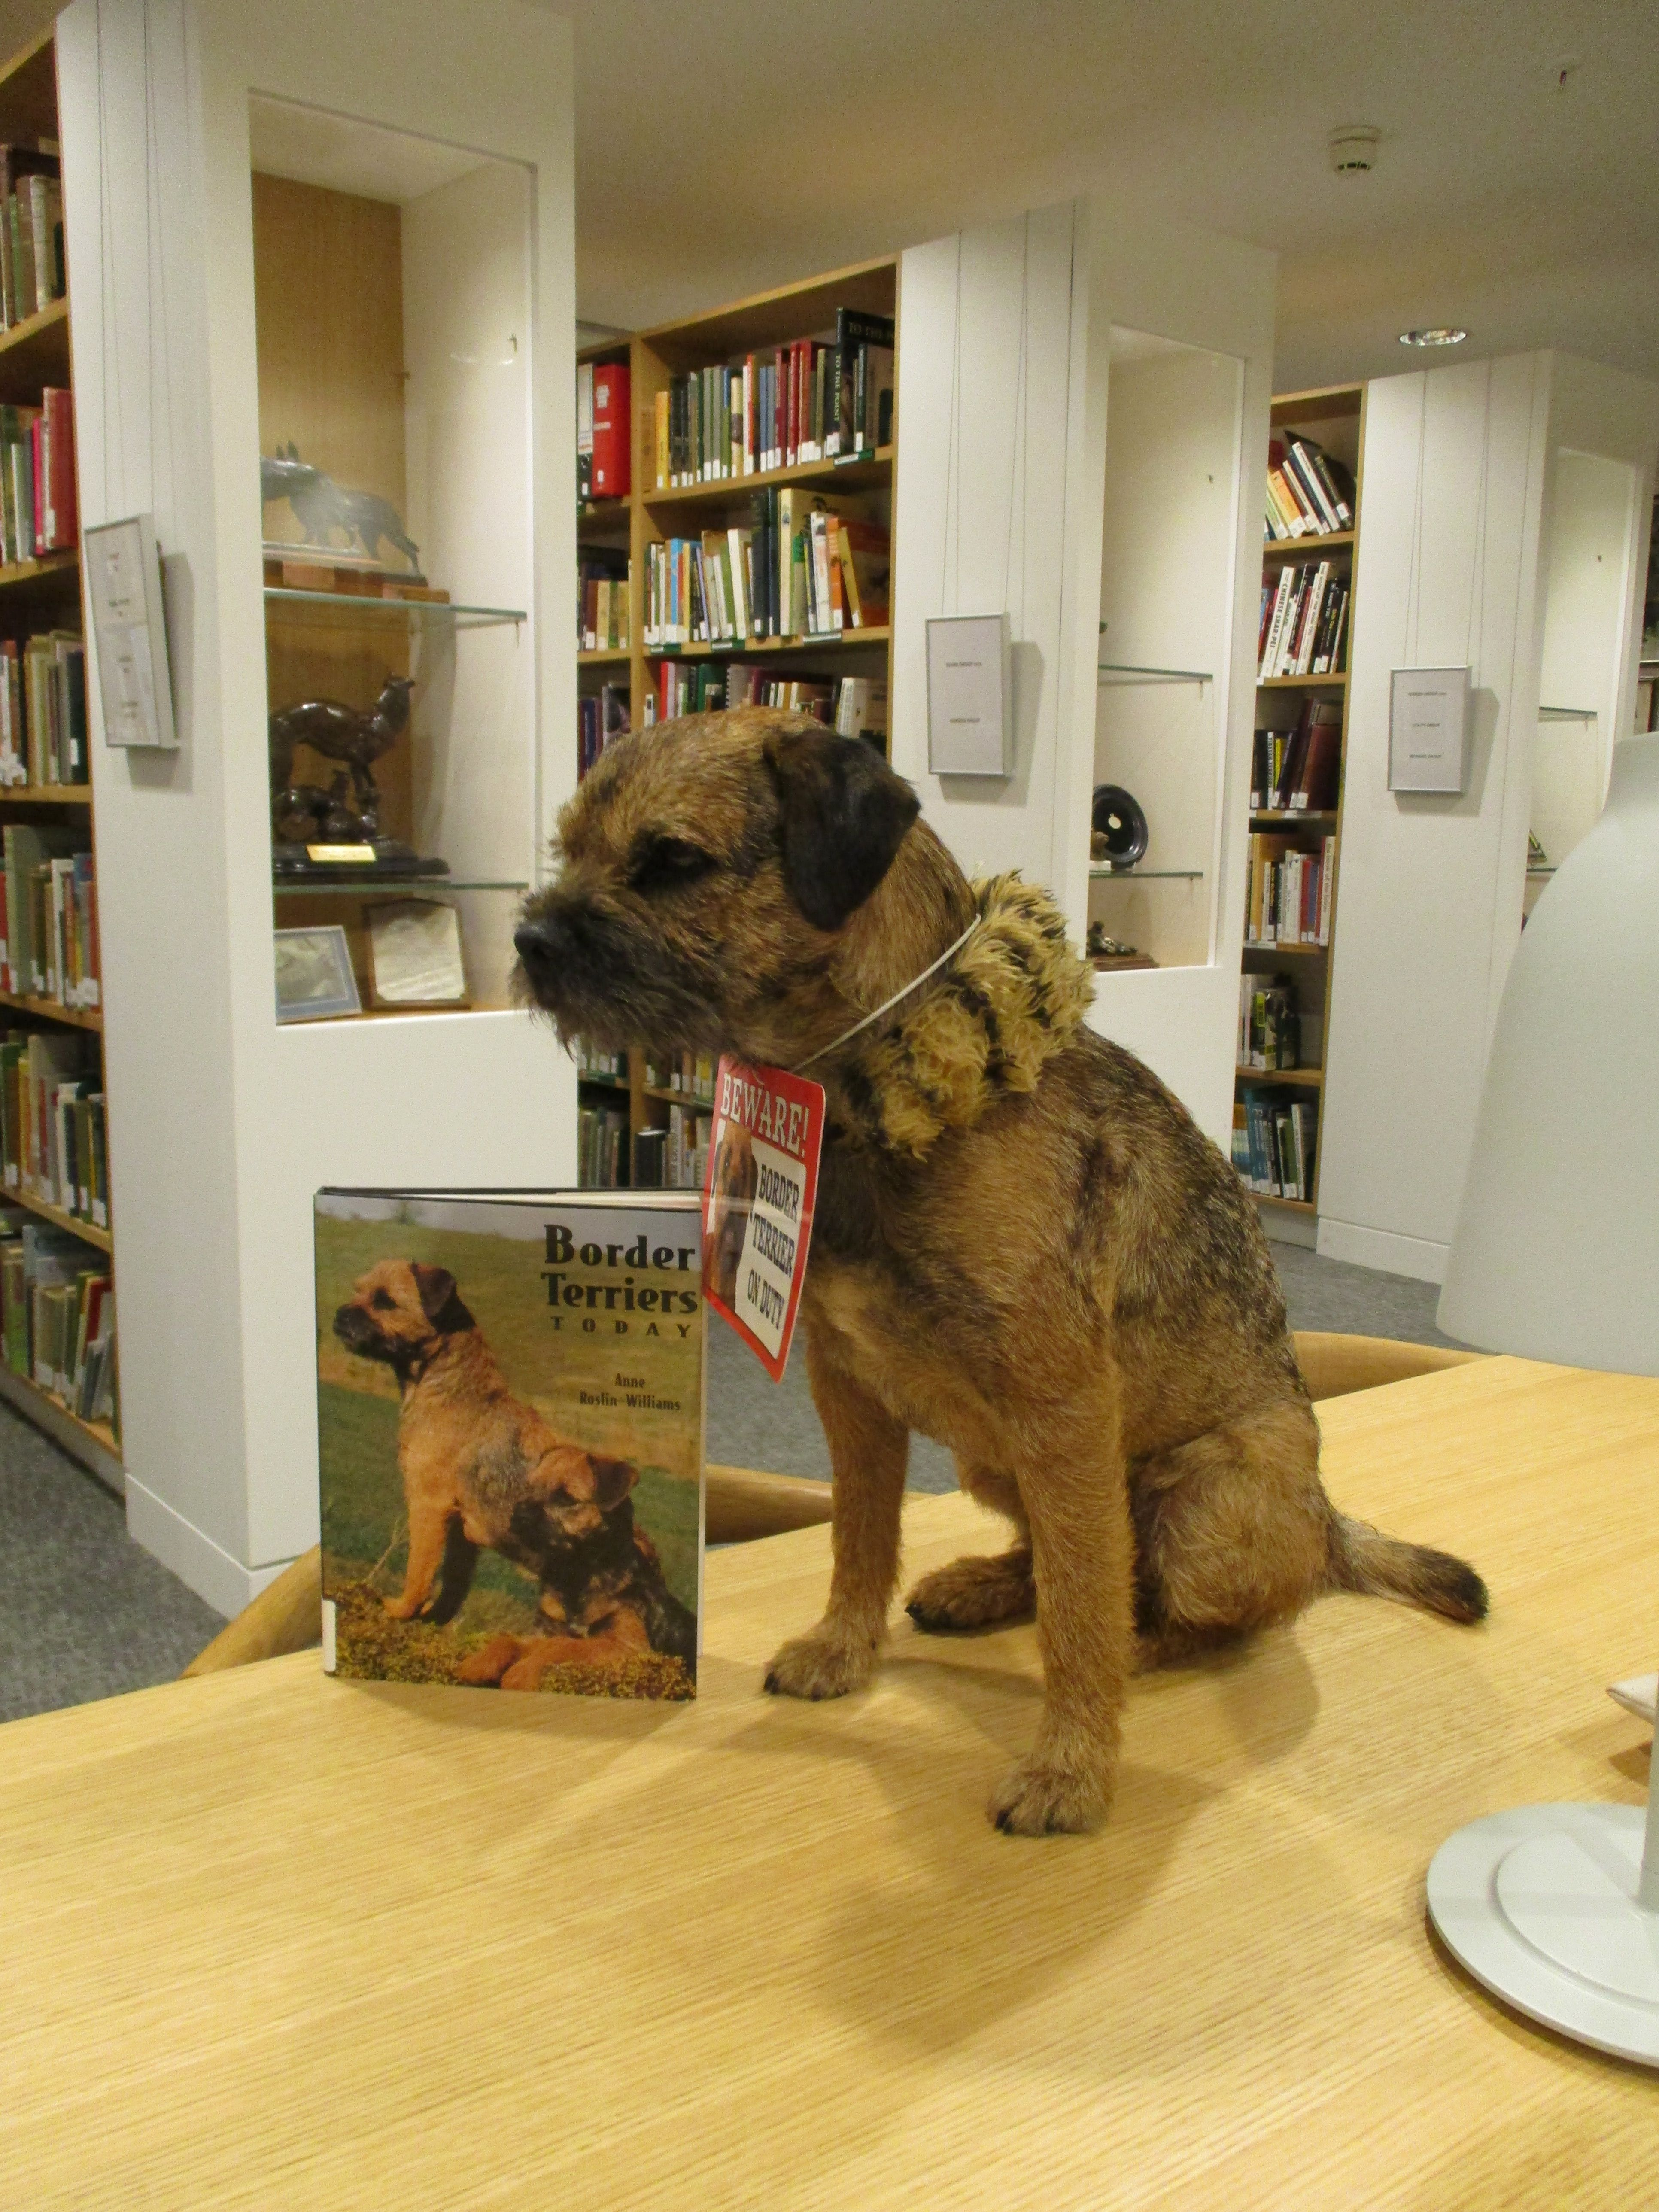 Kennel Club Library Border terrier, Terrier, Doggy